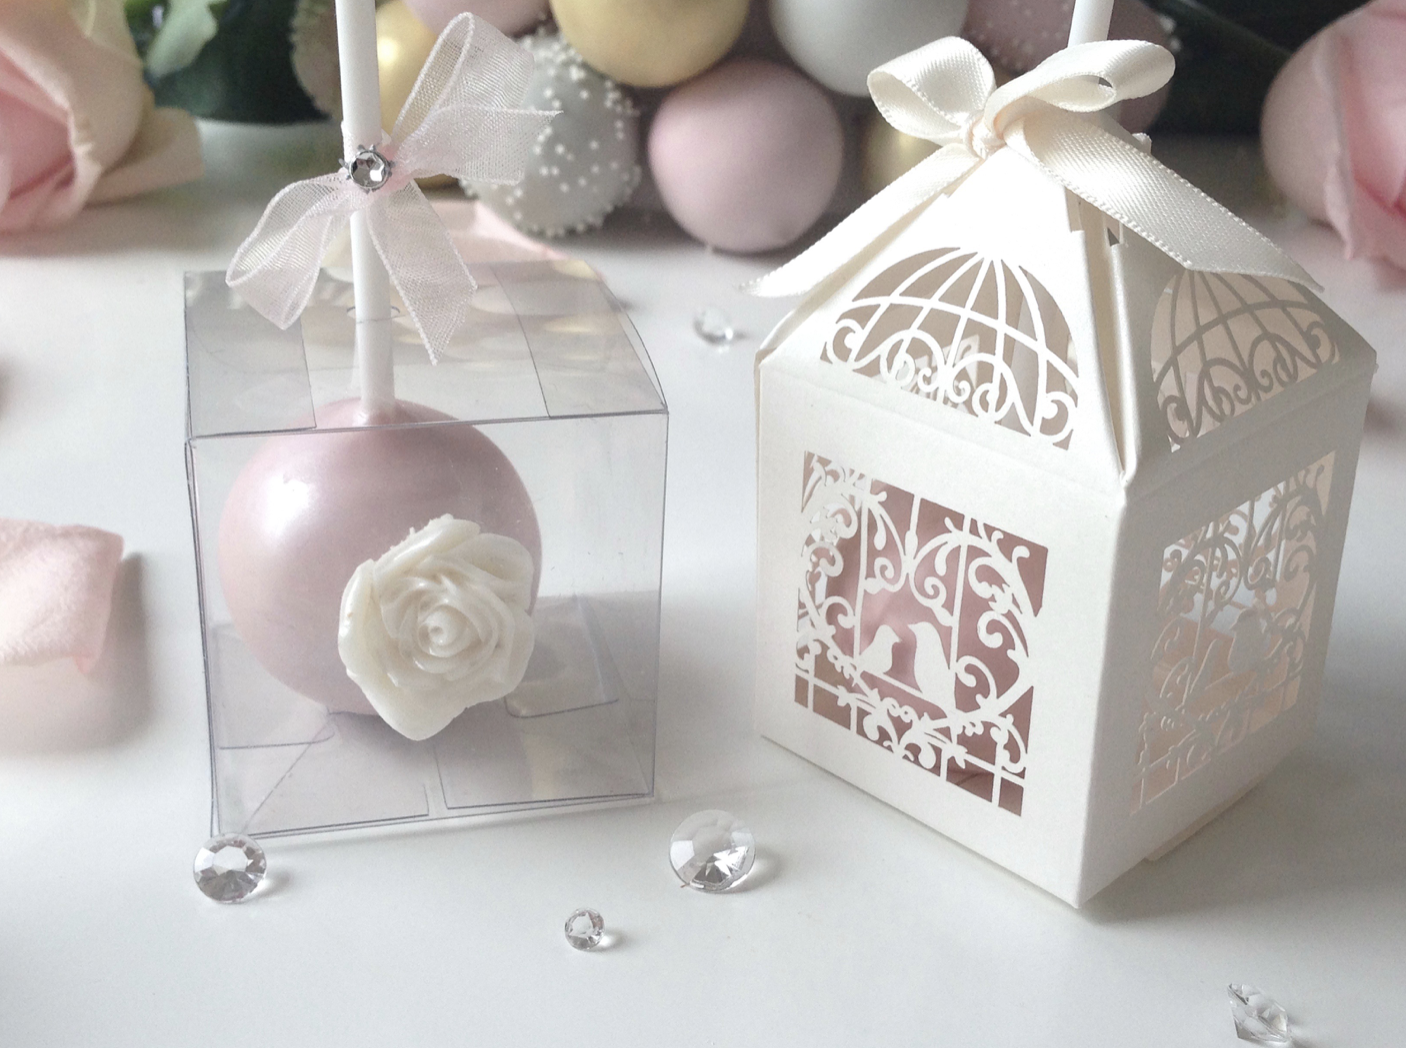 Beautiful handmade wedding cake pops. We tailor designs to co ...